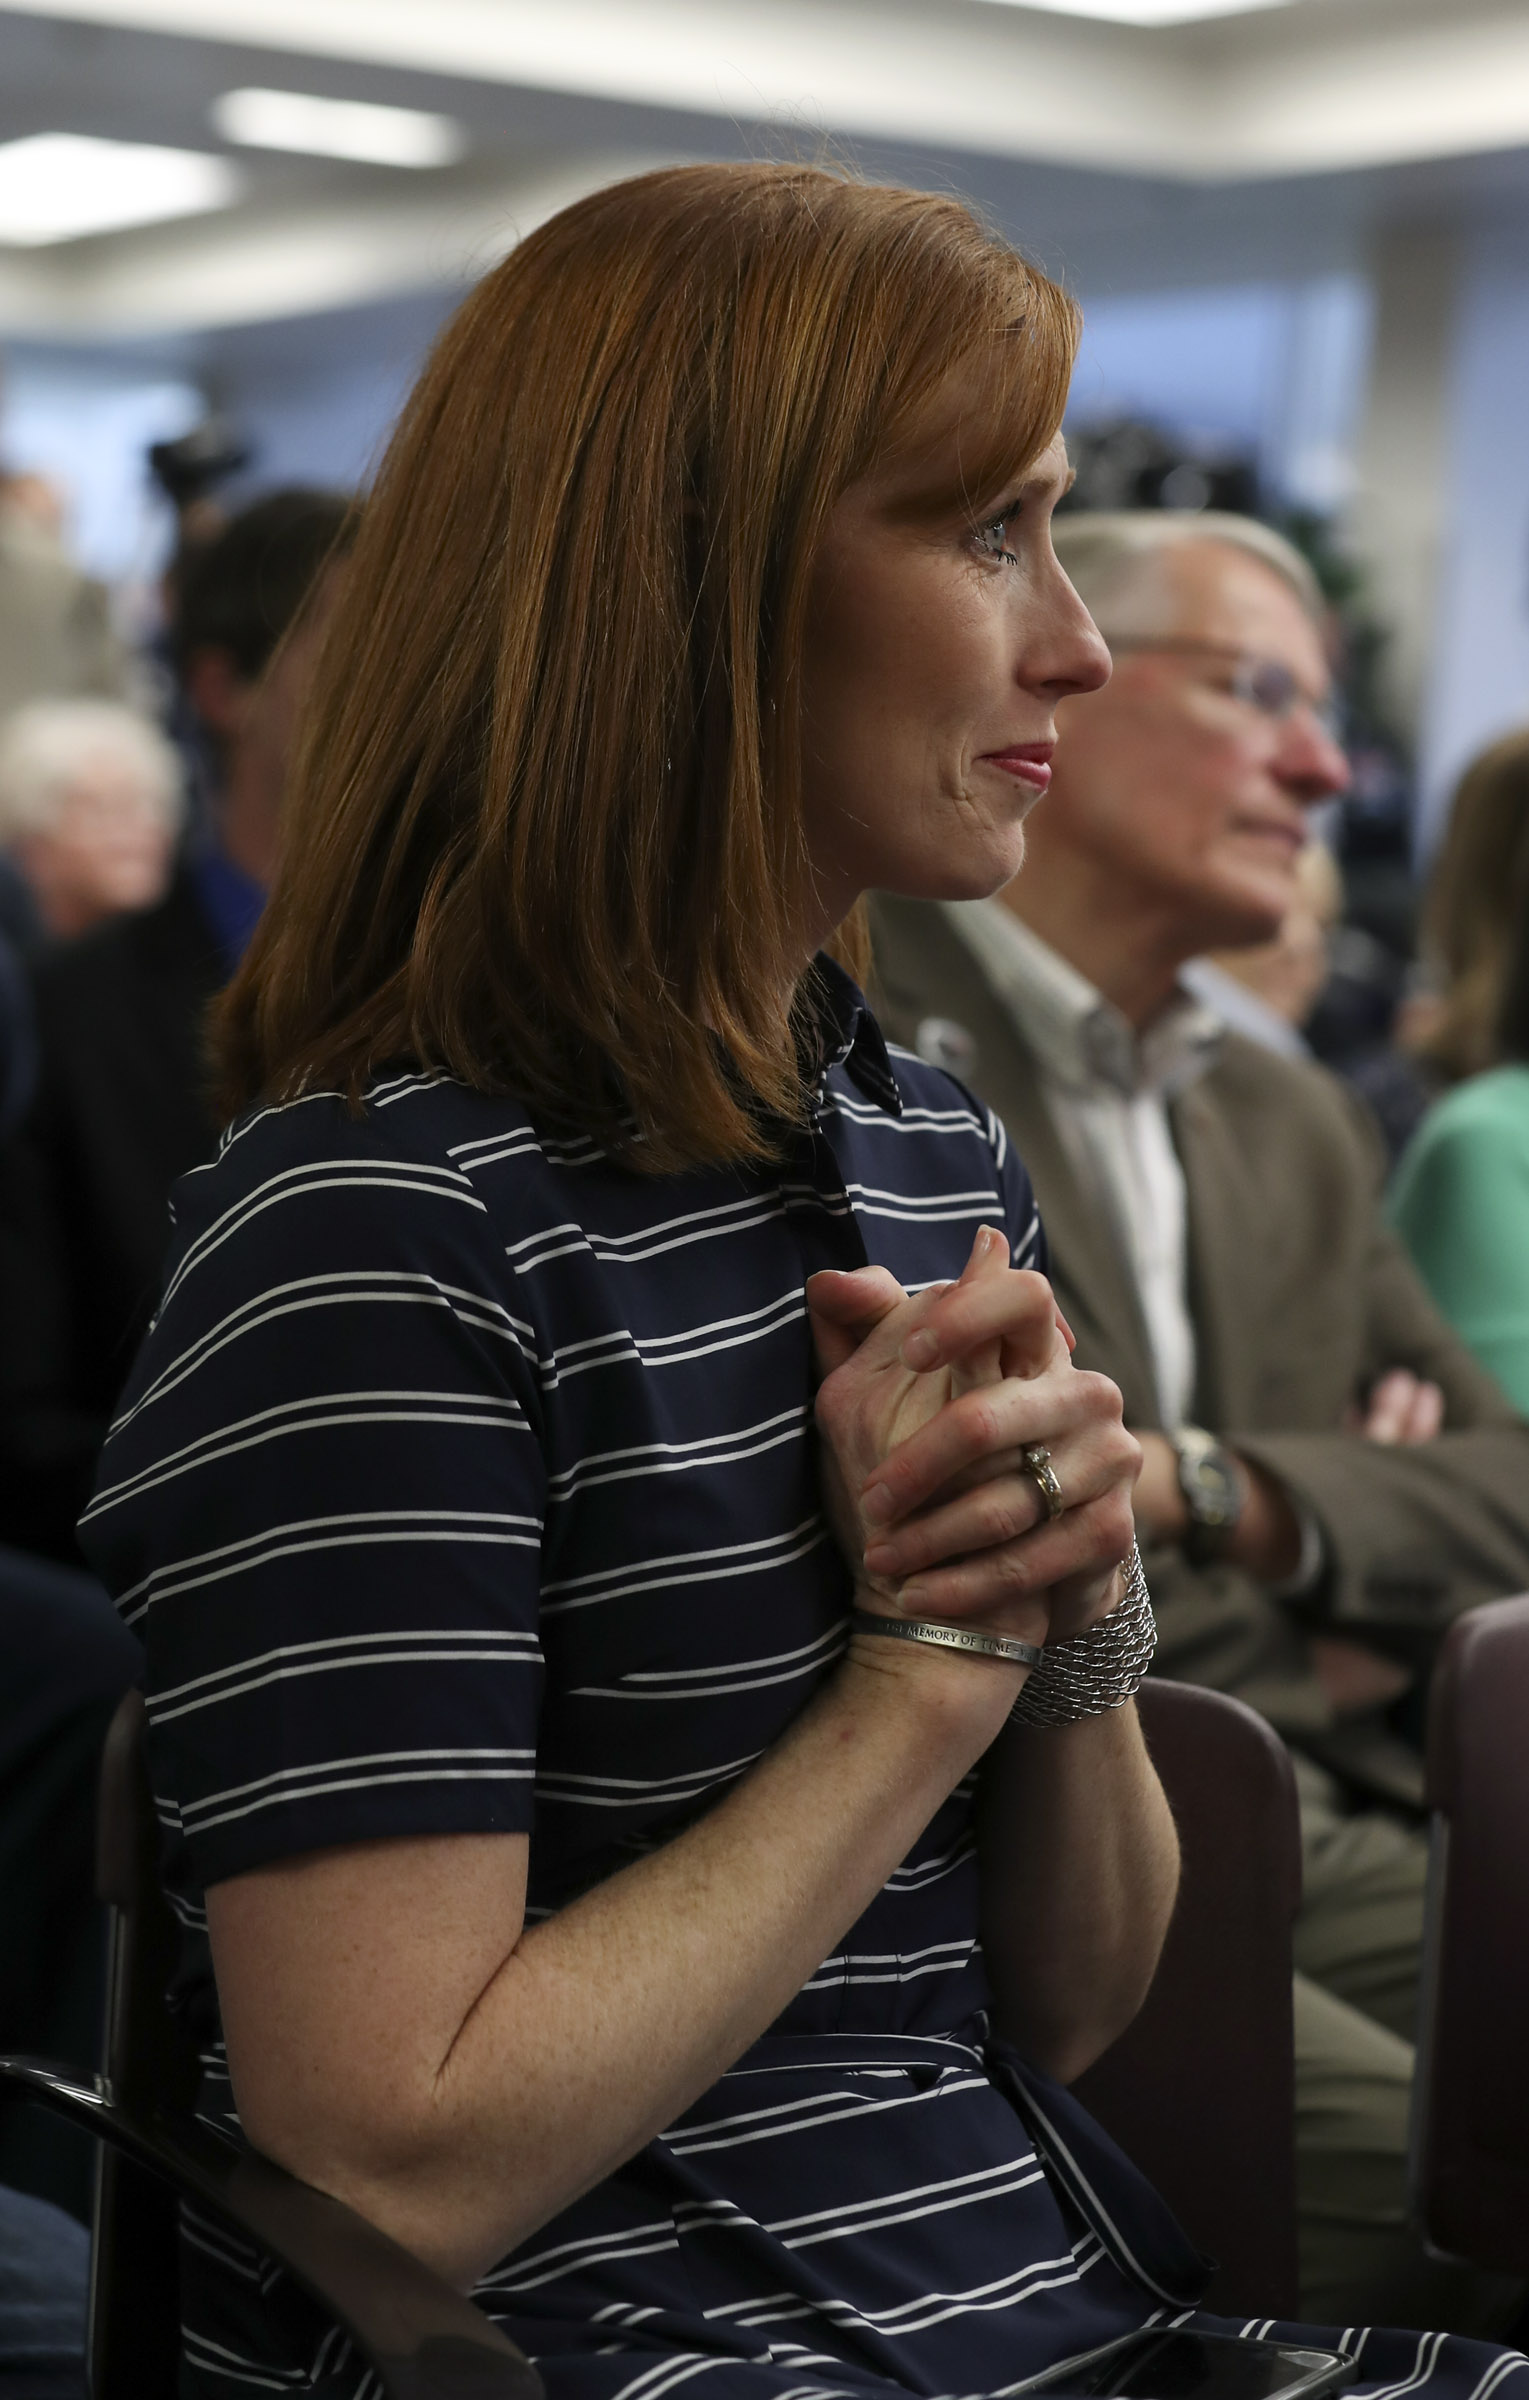 Jennie Taylor listens to a song during a ceremony where the name of her husband, Maj. Brent Taylor, who was killed in Afghanistan in 2018, was added to the Reflection Room Memorial Wall in the Wilkinson Center on the BYU campus in Provo on Thursday, May 23, 2019.